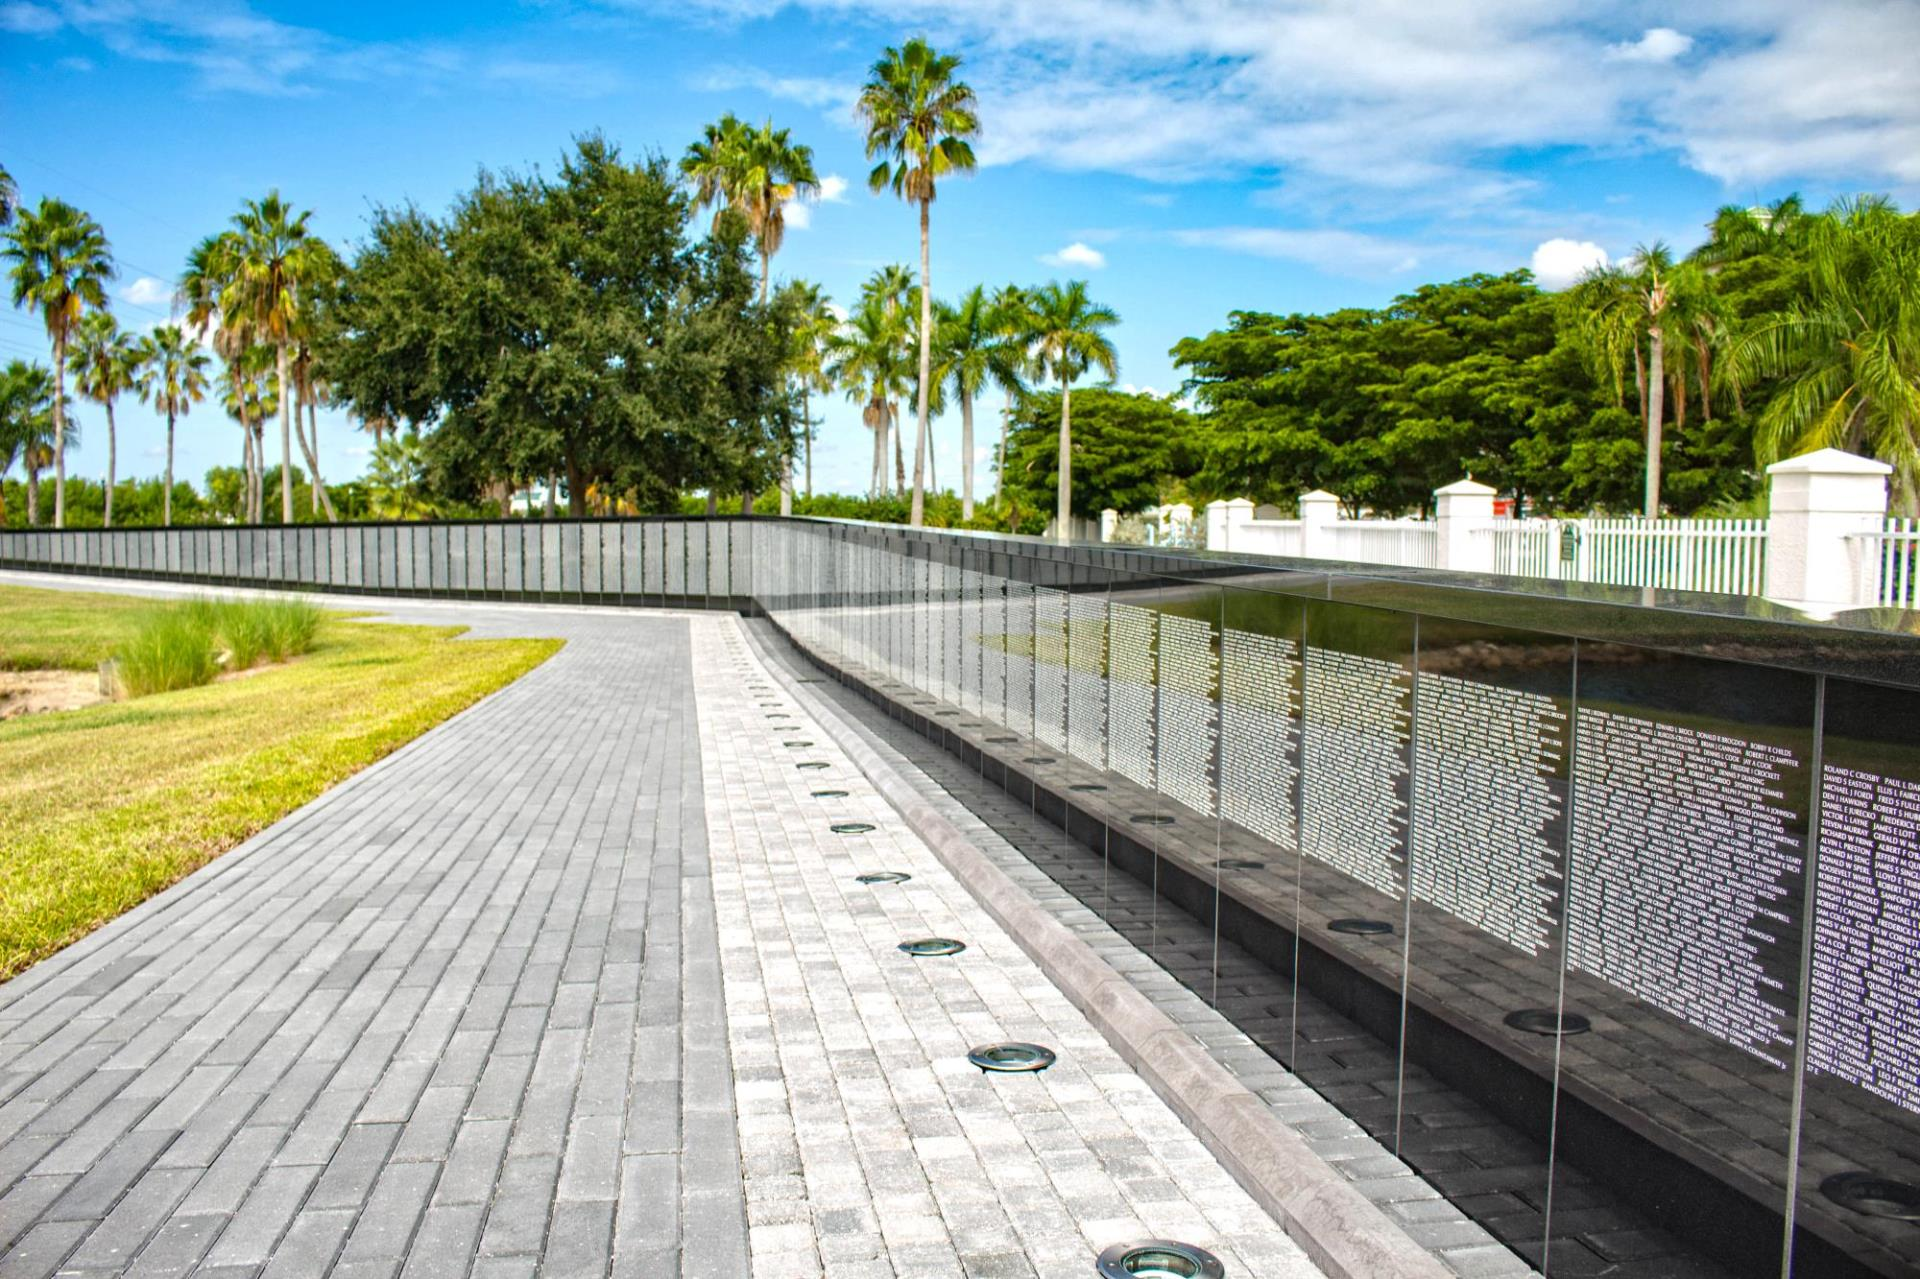 Brick path along the vietnam memorial wall panels